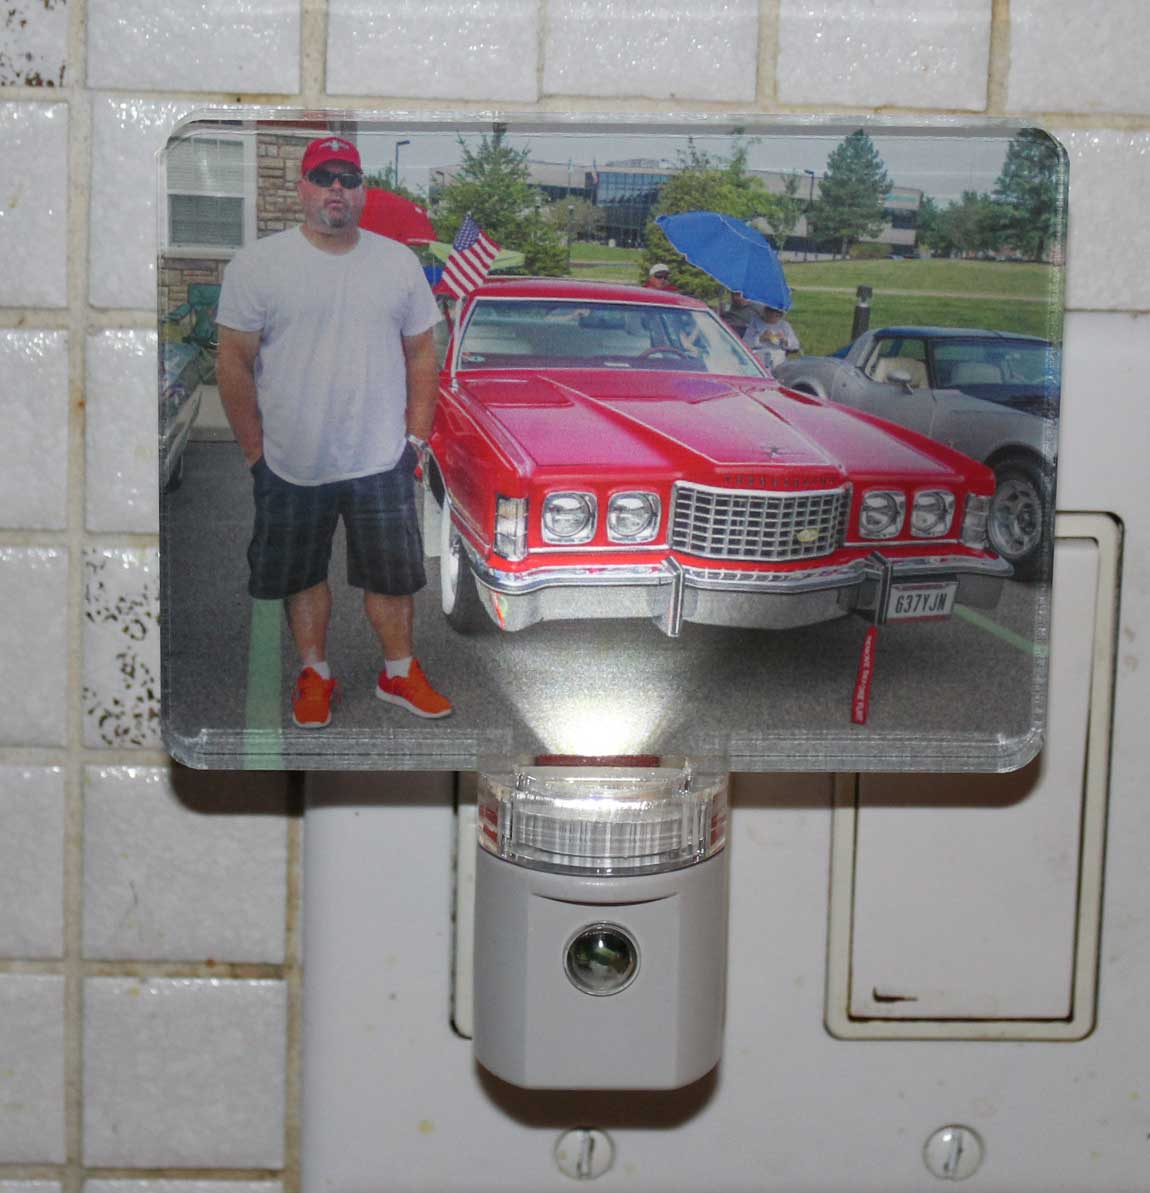 Personalized Photo Night light - UV Printed